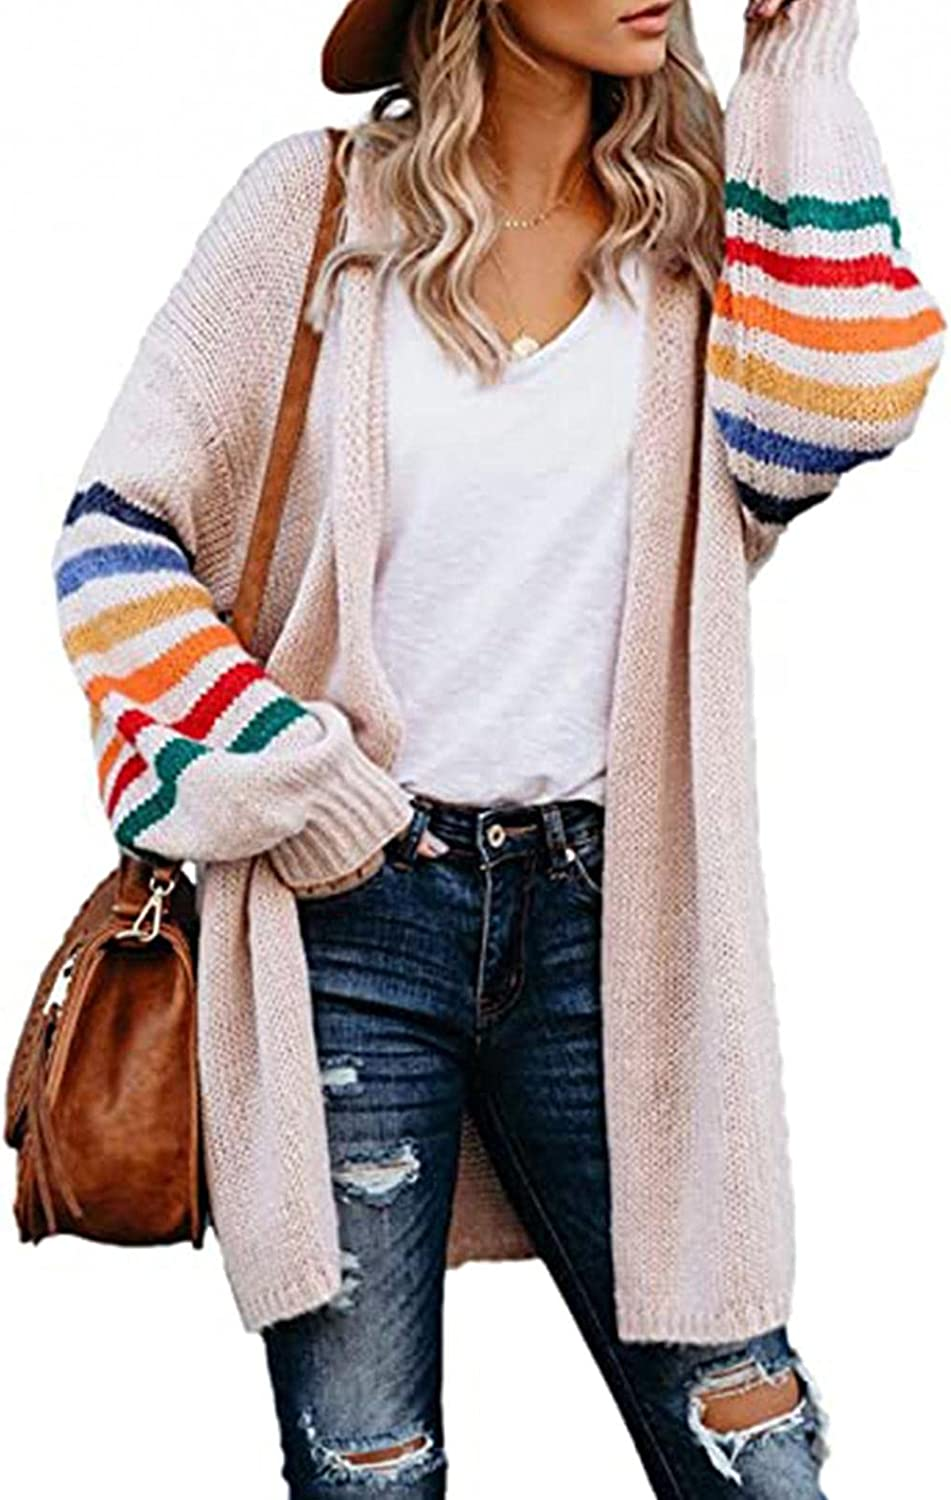 FGDJEE Cardigan Sweaters for Women Fall Stripe Printed Knit Open Front Long Cardigan Fashion Tops